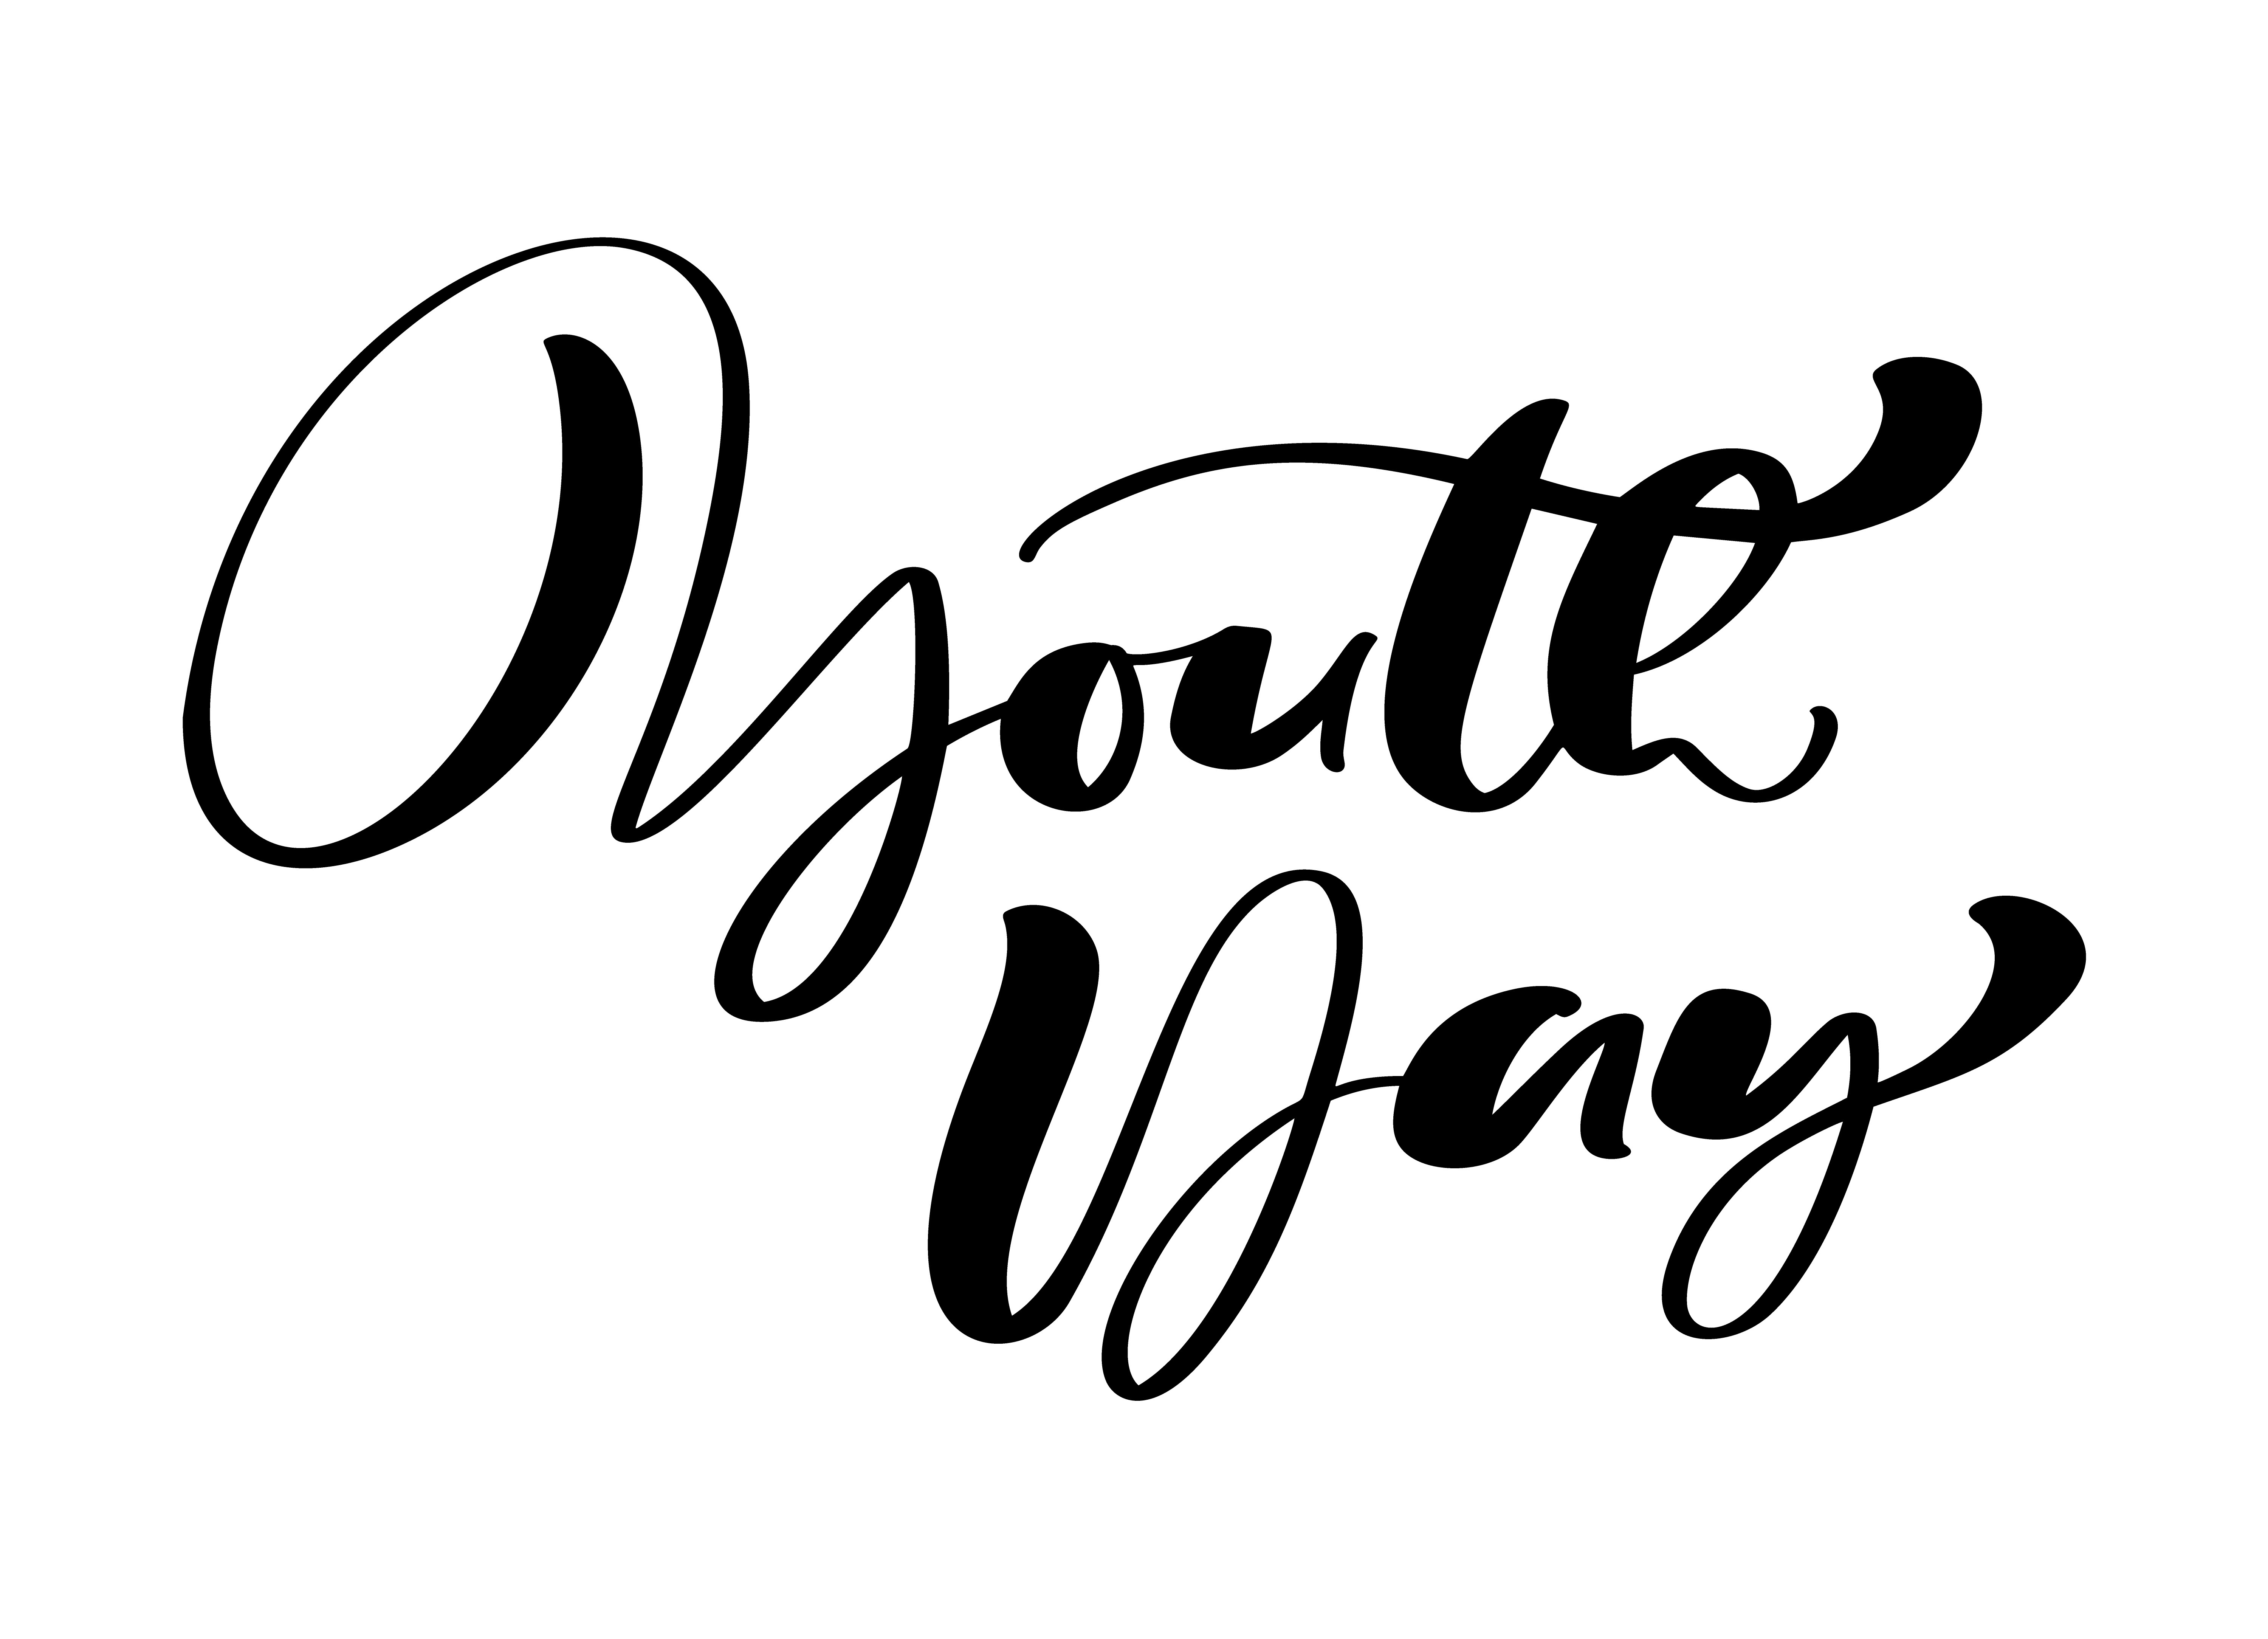 Youth Day Vector Calligraphy Lettering Phrase For